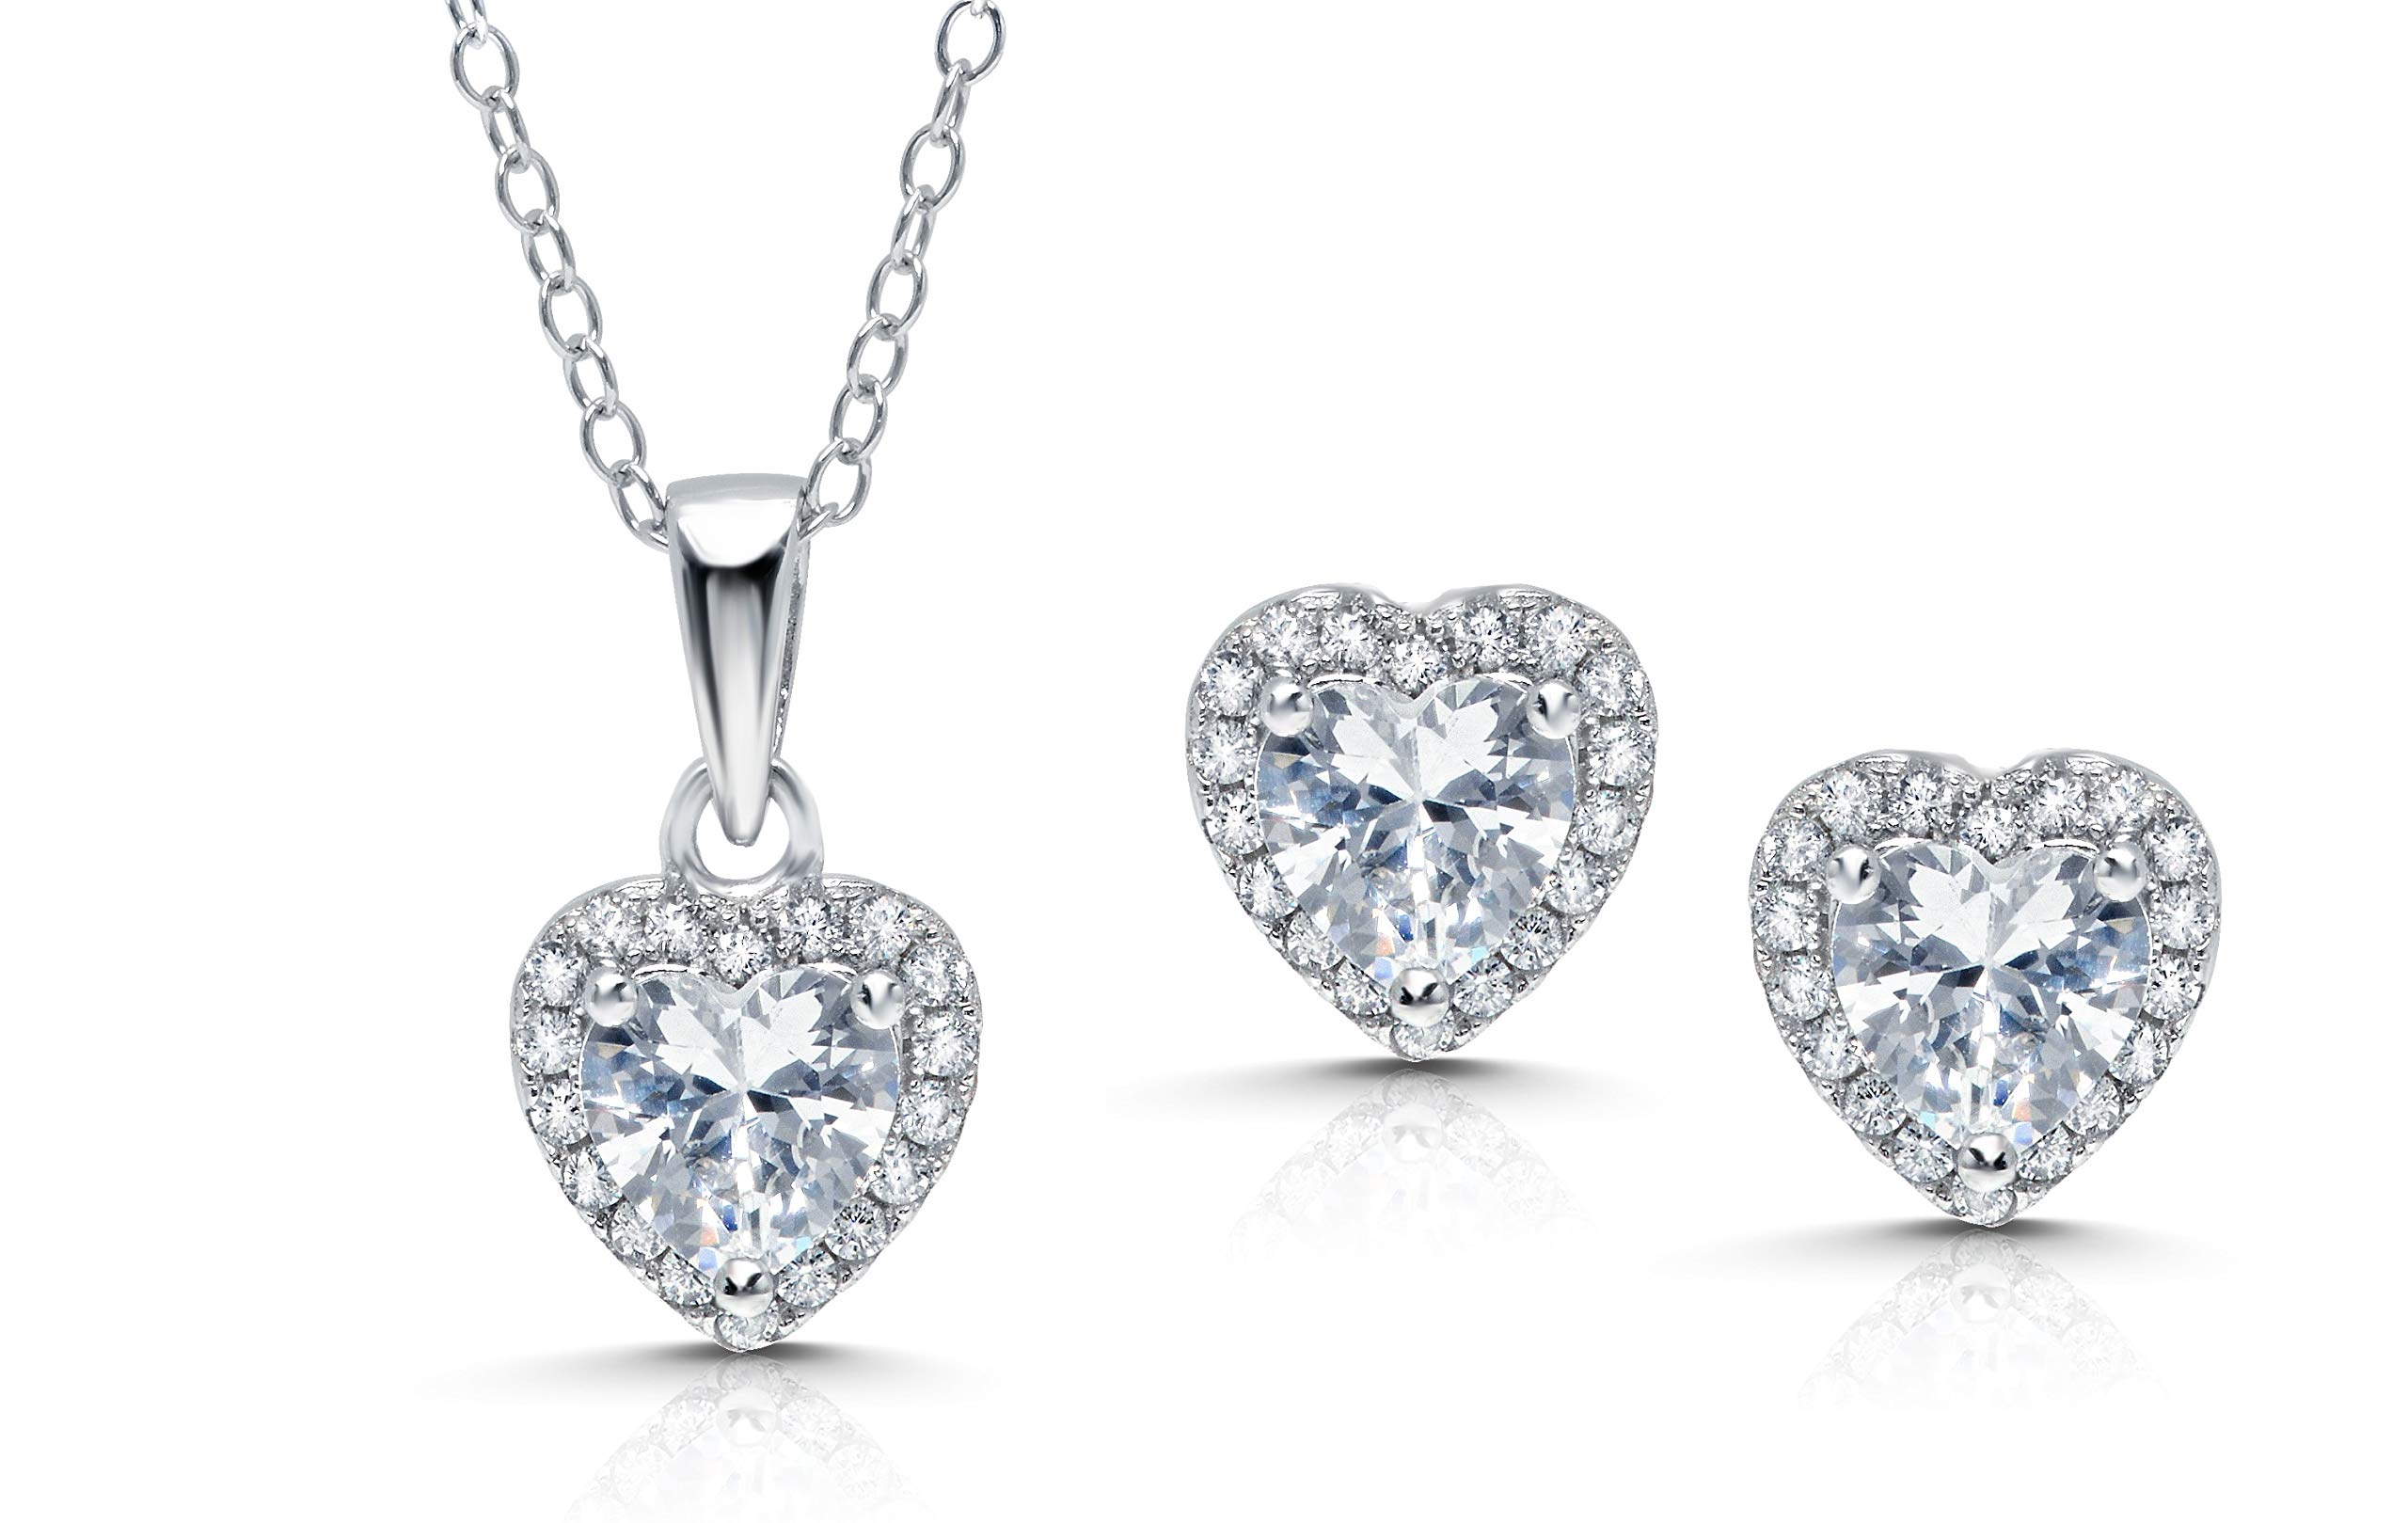 Sterling Silver Cubic Zirconia Heart Earrings and Pendant Set